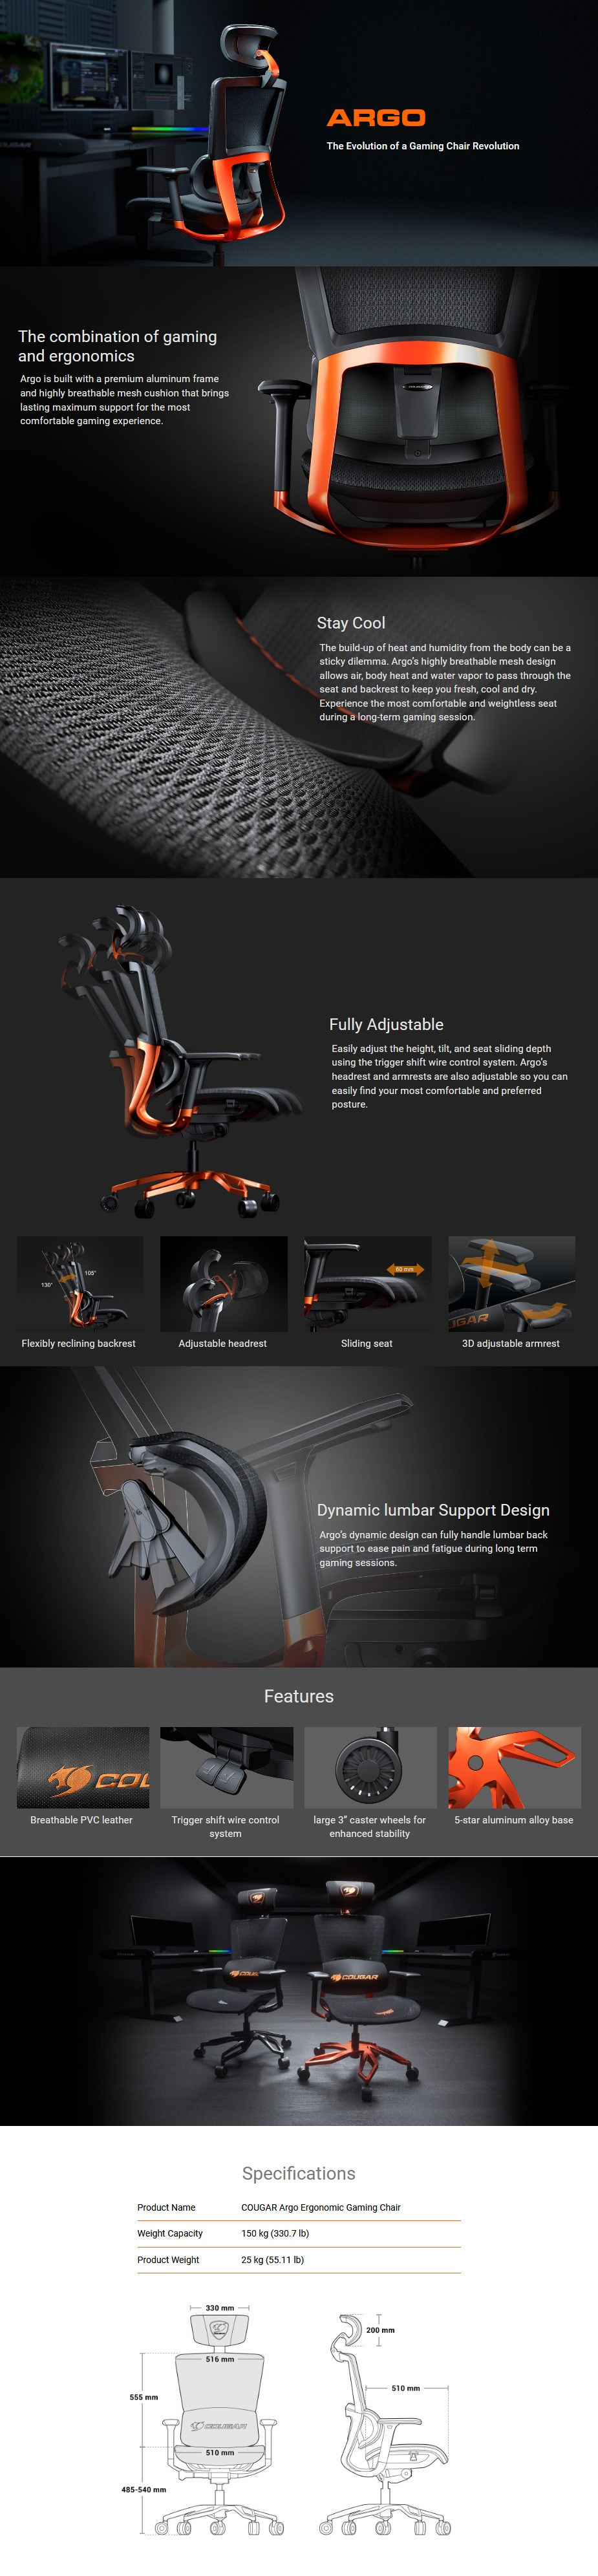 Cougar Argo Ergonomic Gaming Chair - Black - Overview 1